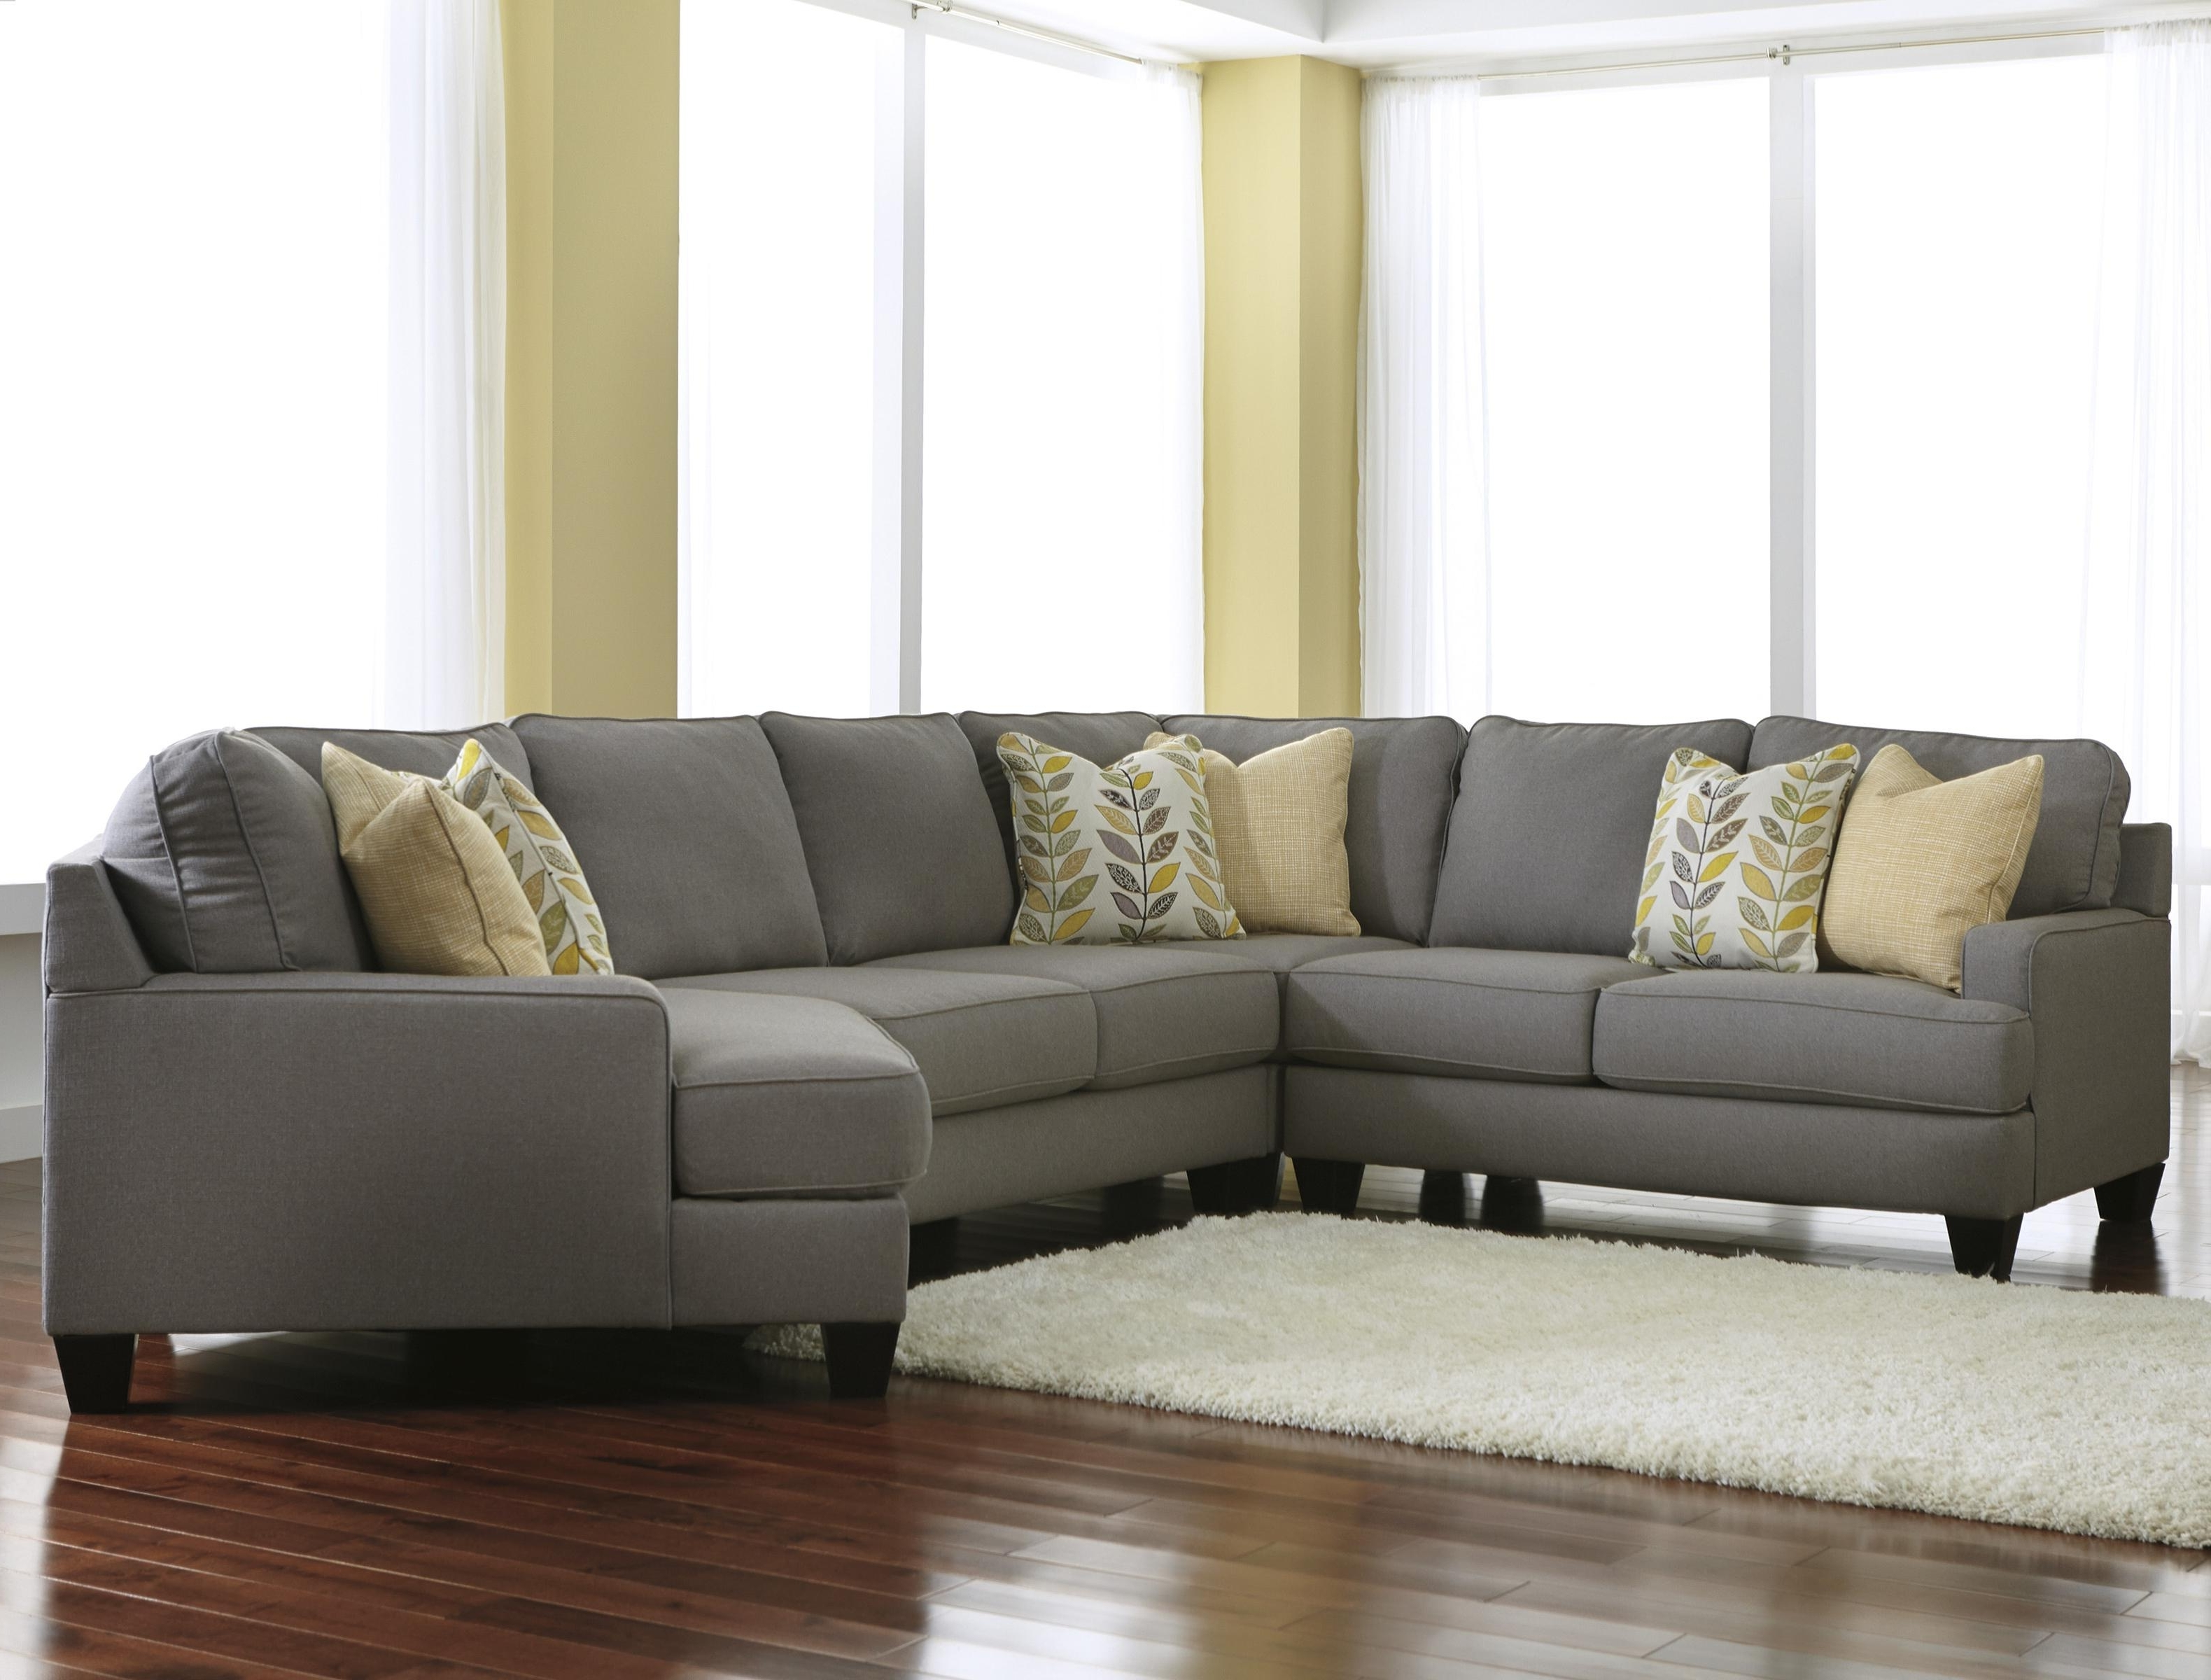 Cuddler Sectional Sofas Intended For Well Known Modern 4 Piece Sectional Sofa With Right Cuddler & Reversible Seat (View 2 of 15)